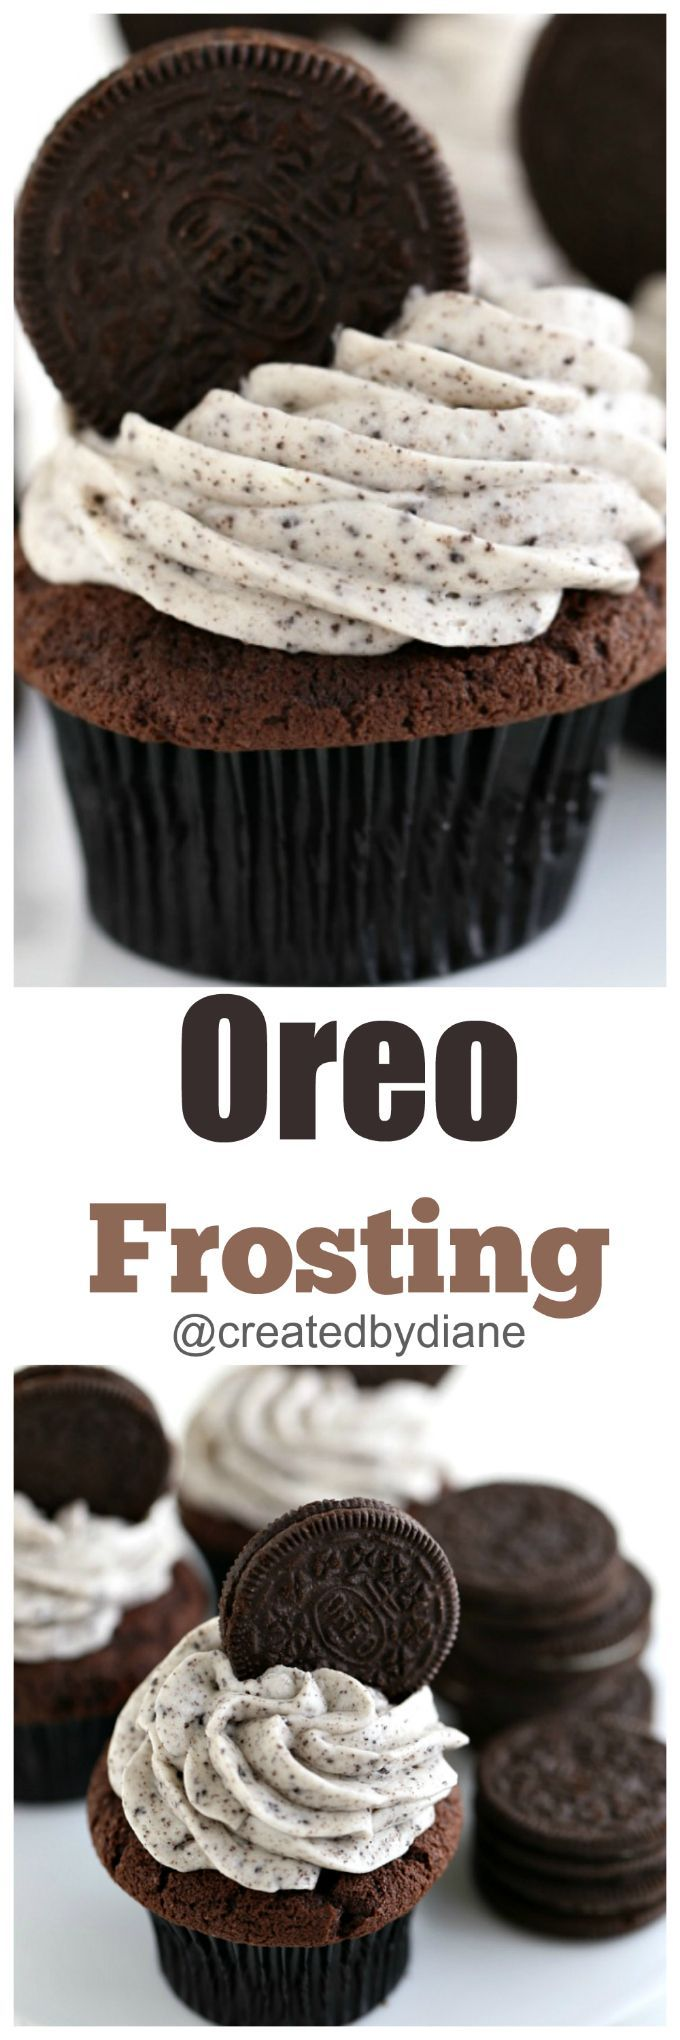 Oreo Frosting from @createdbydiane